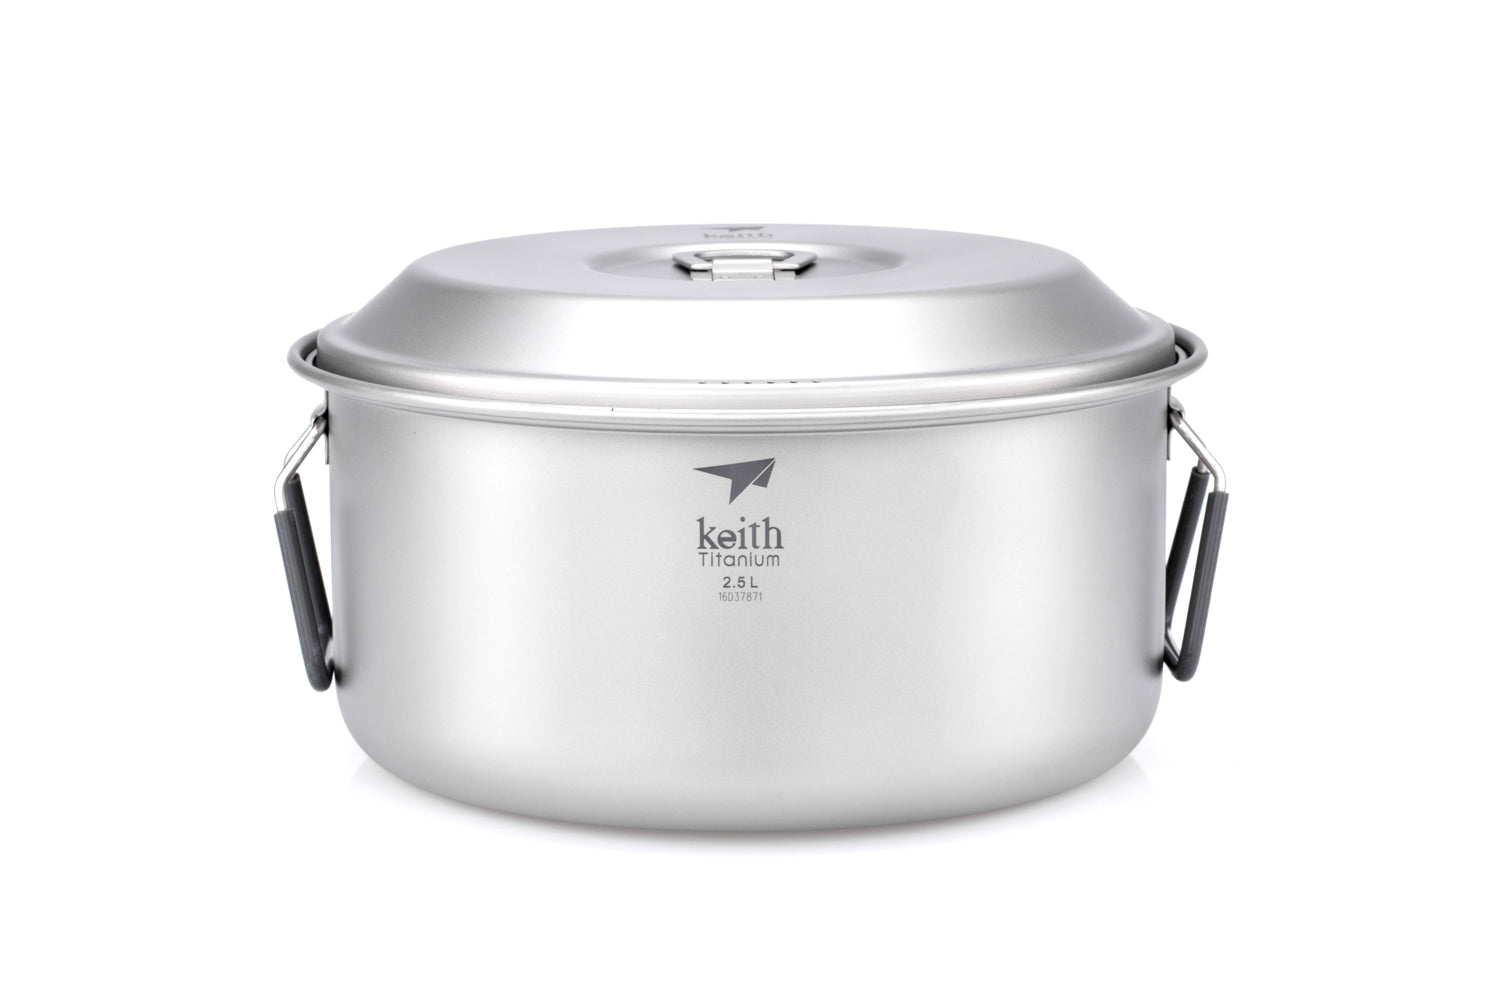 Keith 2-Piece Titanium Pot and Pan Cook Set Ti6018